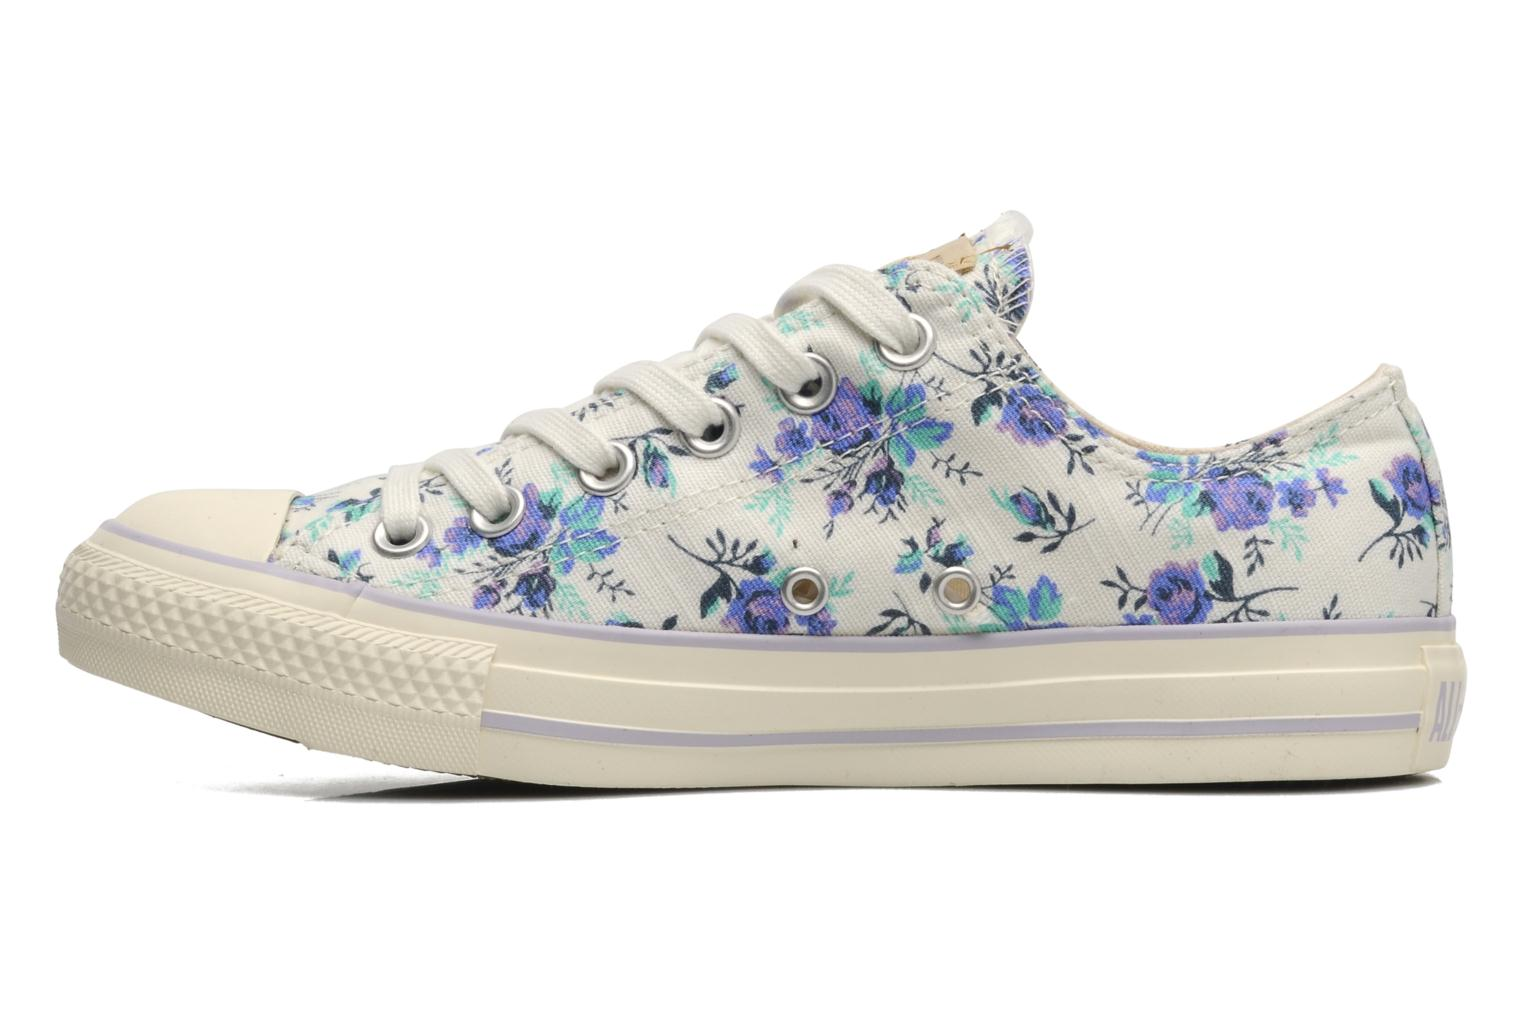 8bbc9d250fe5 CHUCK TAYLOR ALL STAR FLORAL PRINT OX W BY CONVERSE (MULTICOLOR ...